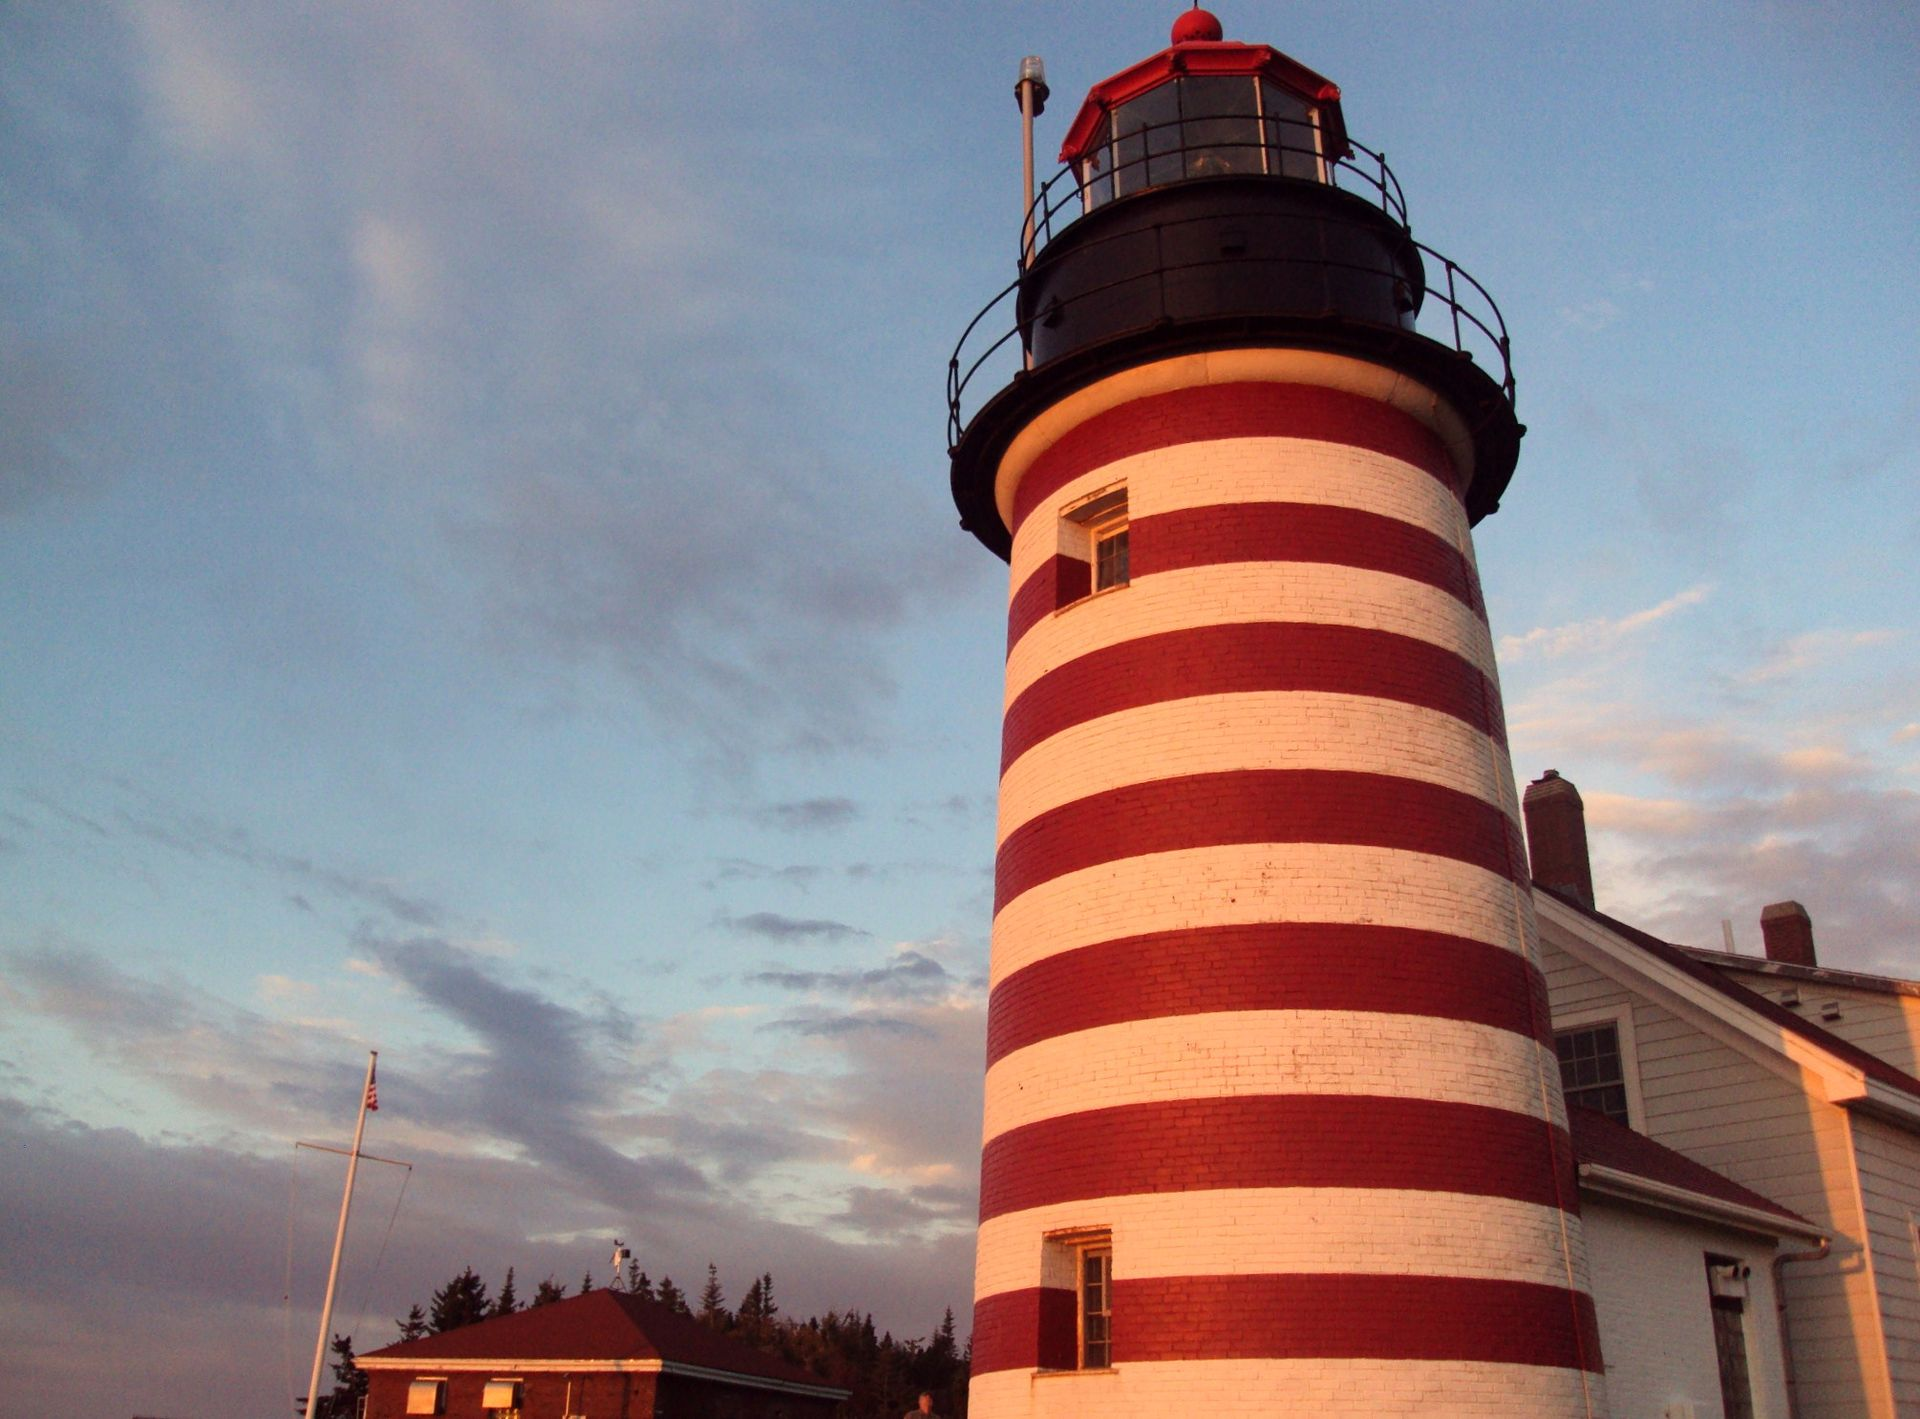 The West Quoddy Head Light